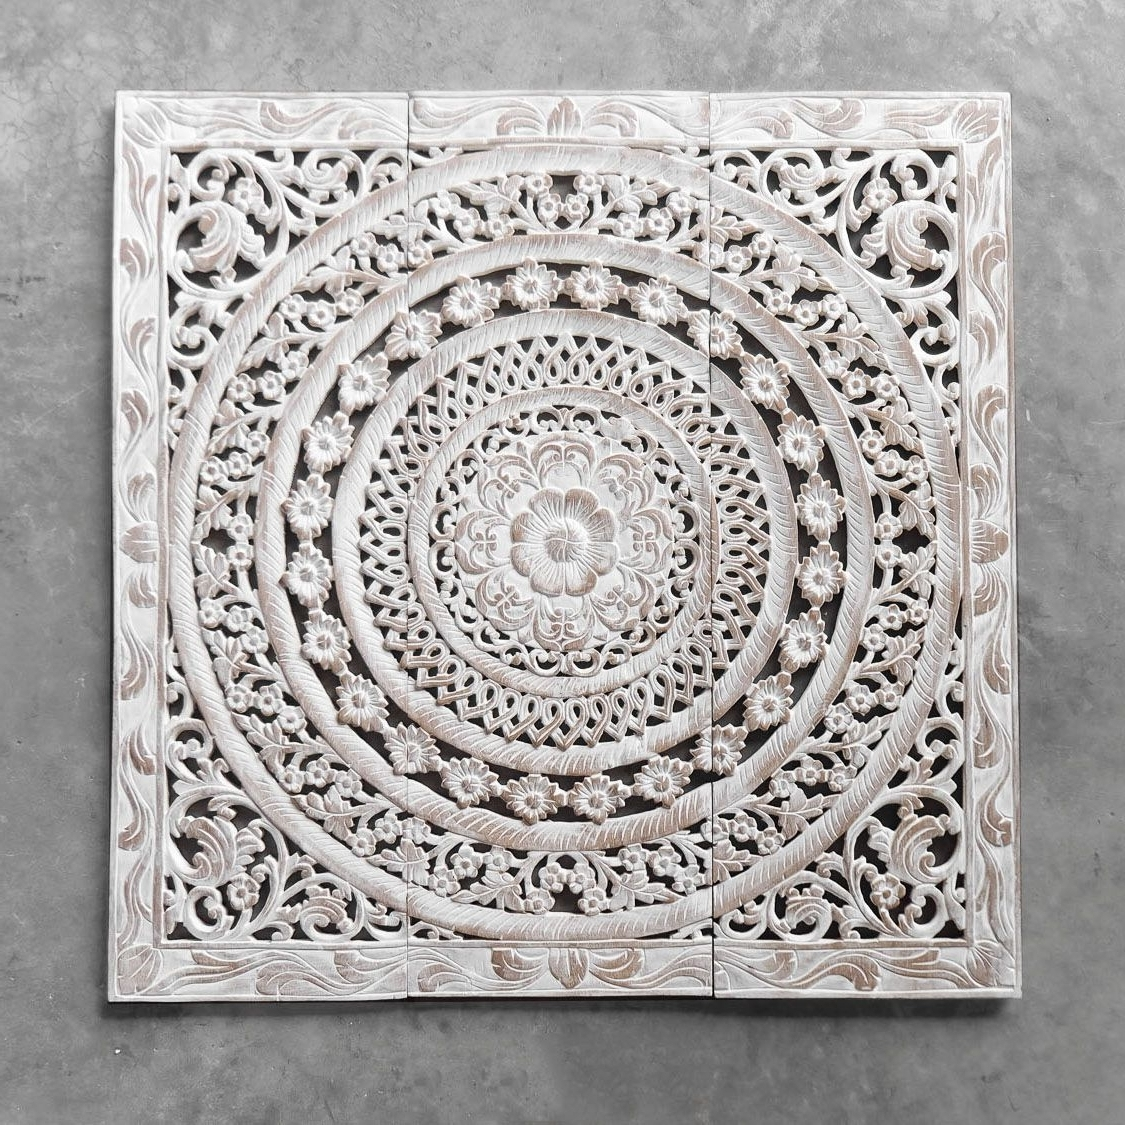 Hand Carved Wood Wall Decor Moroccan Decent Wood Carving Wall Art Within 2018 Carved Wood Wall Art (View 6 of 15)